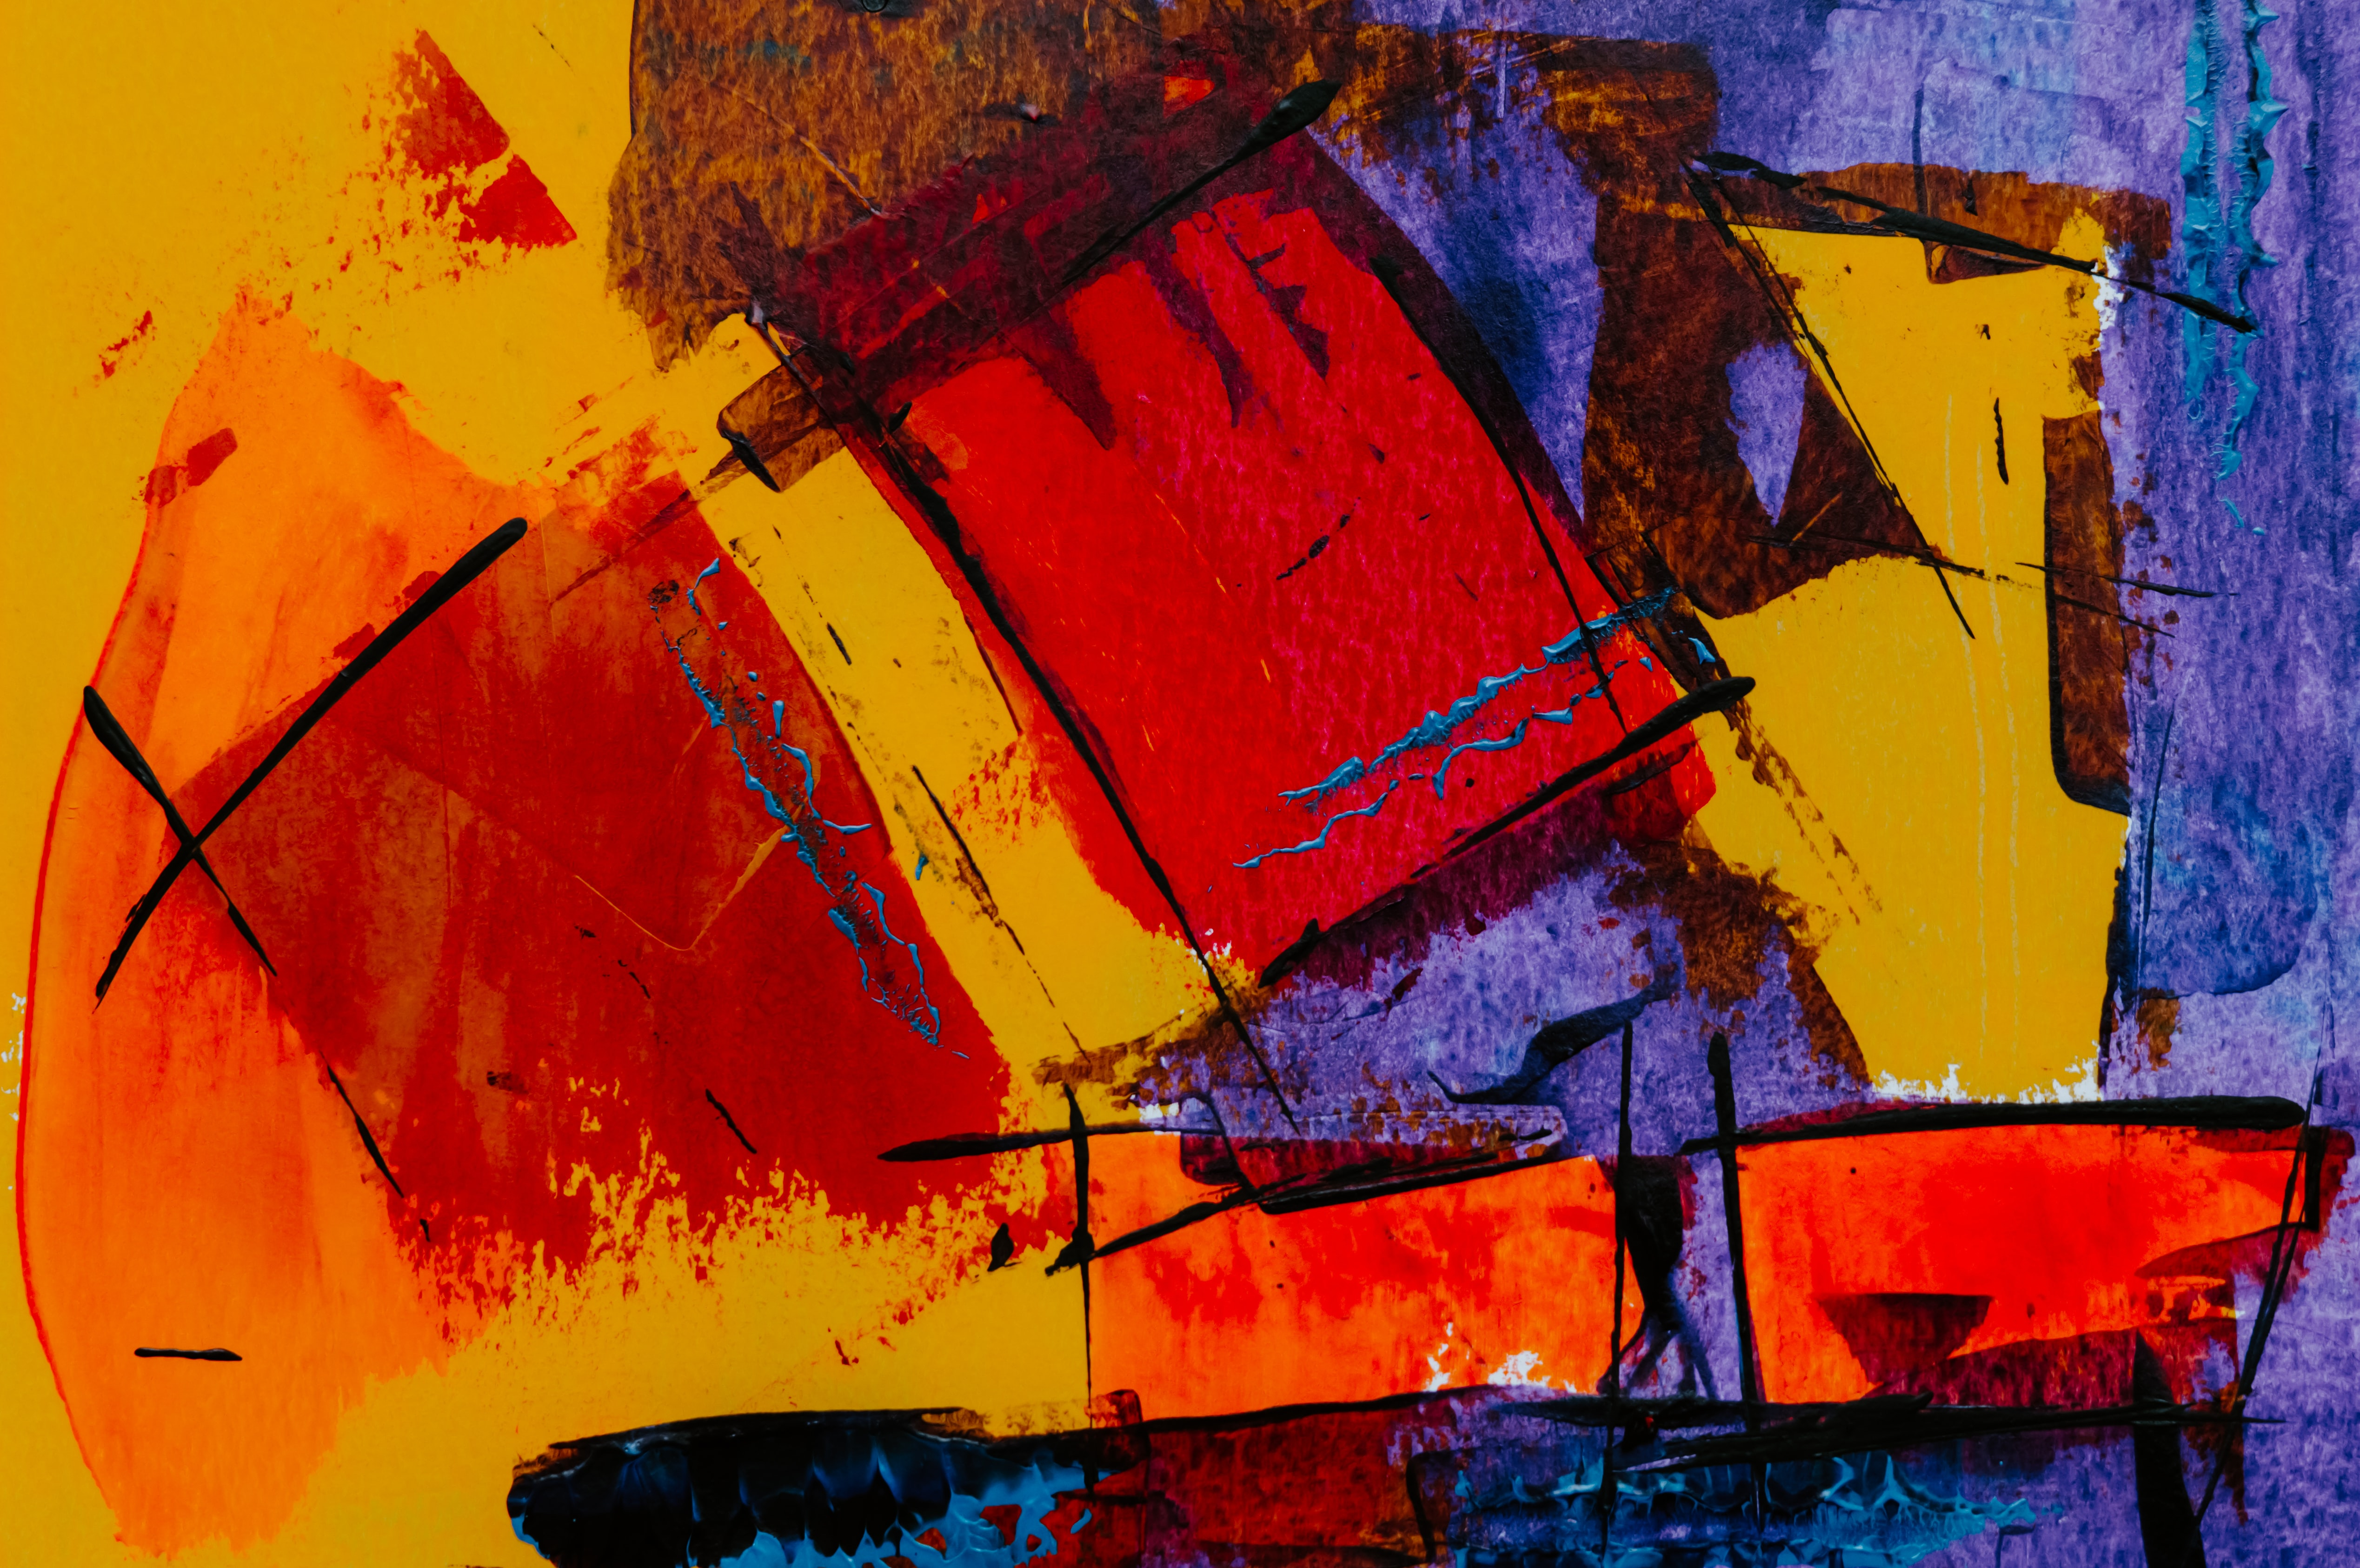 red and blue abstract painting